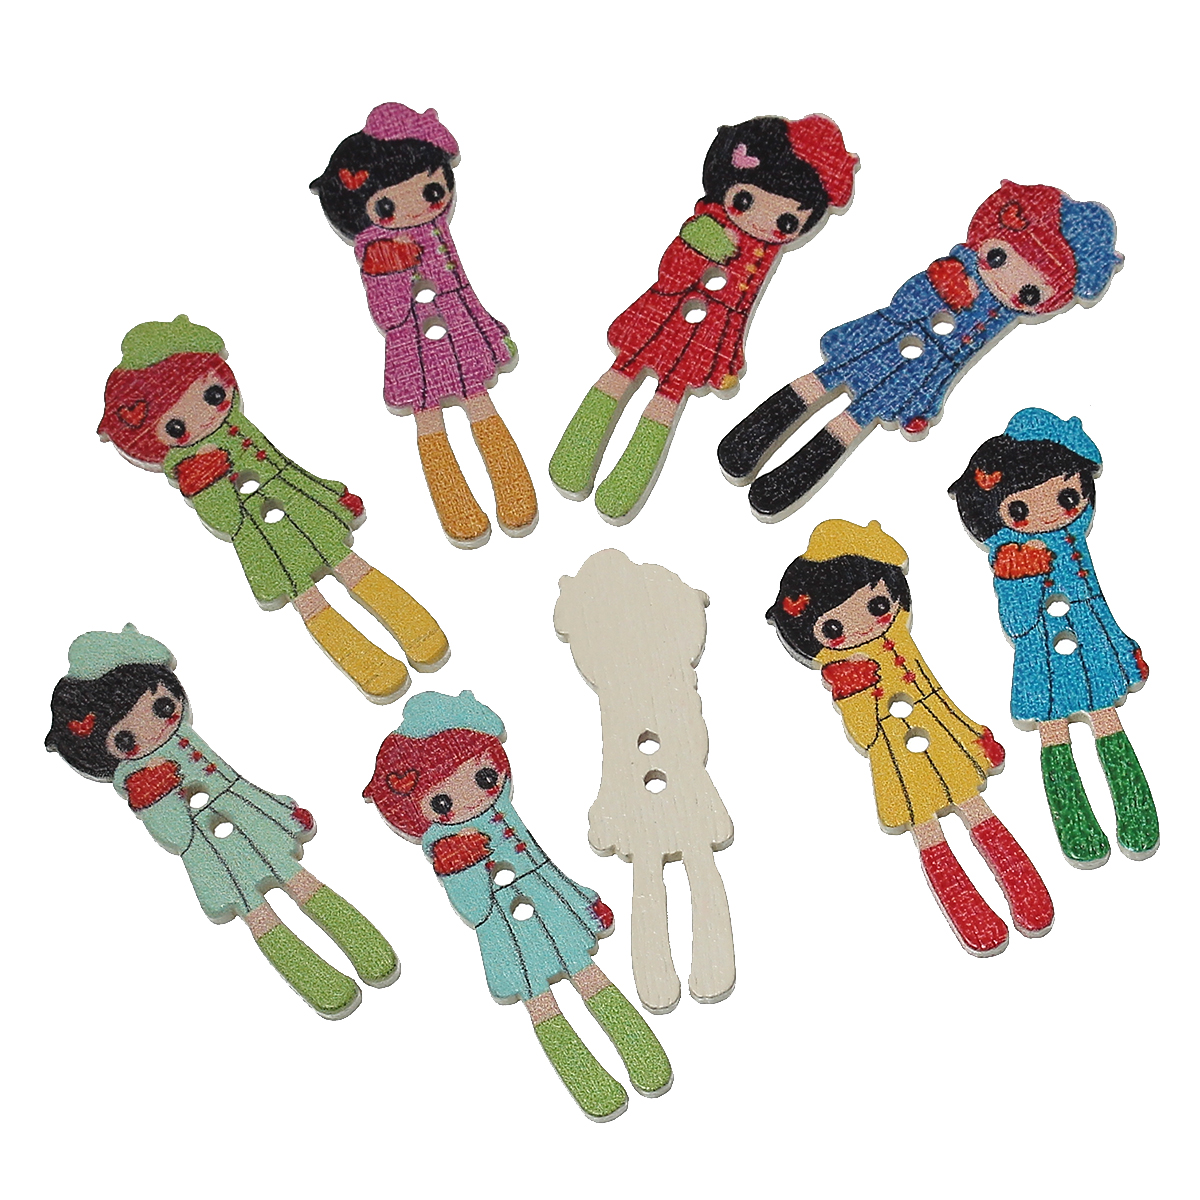 Wood Sewing Button Scrapbooking Girl At Random Two Holes 3.5cm(1 3/8″)x 12mm(4/8″),9 PCs 2015 new